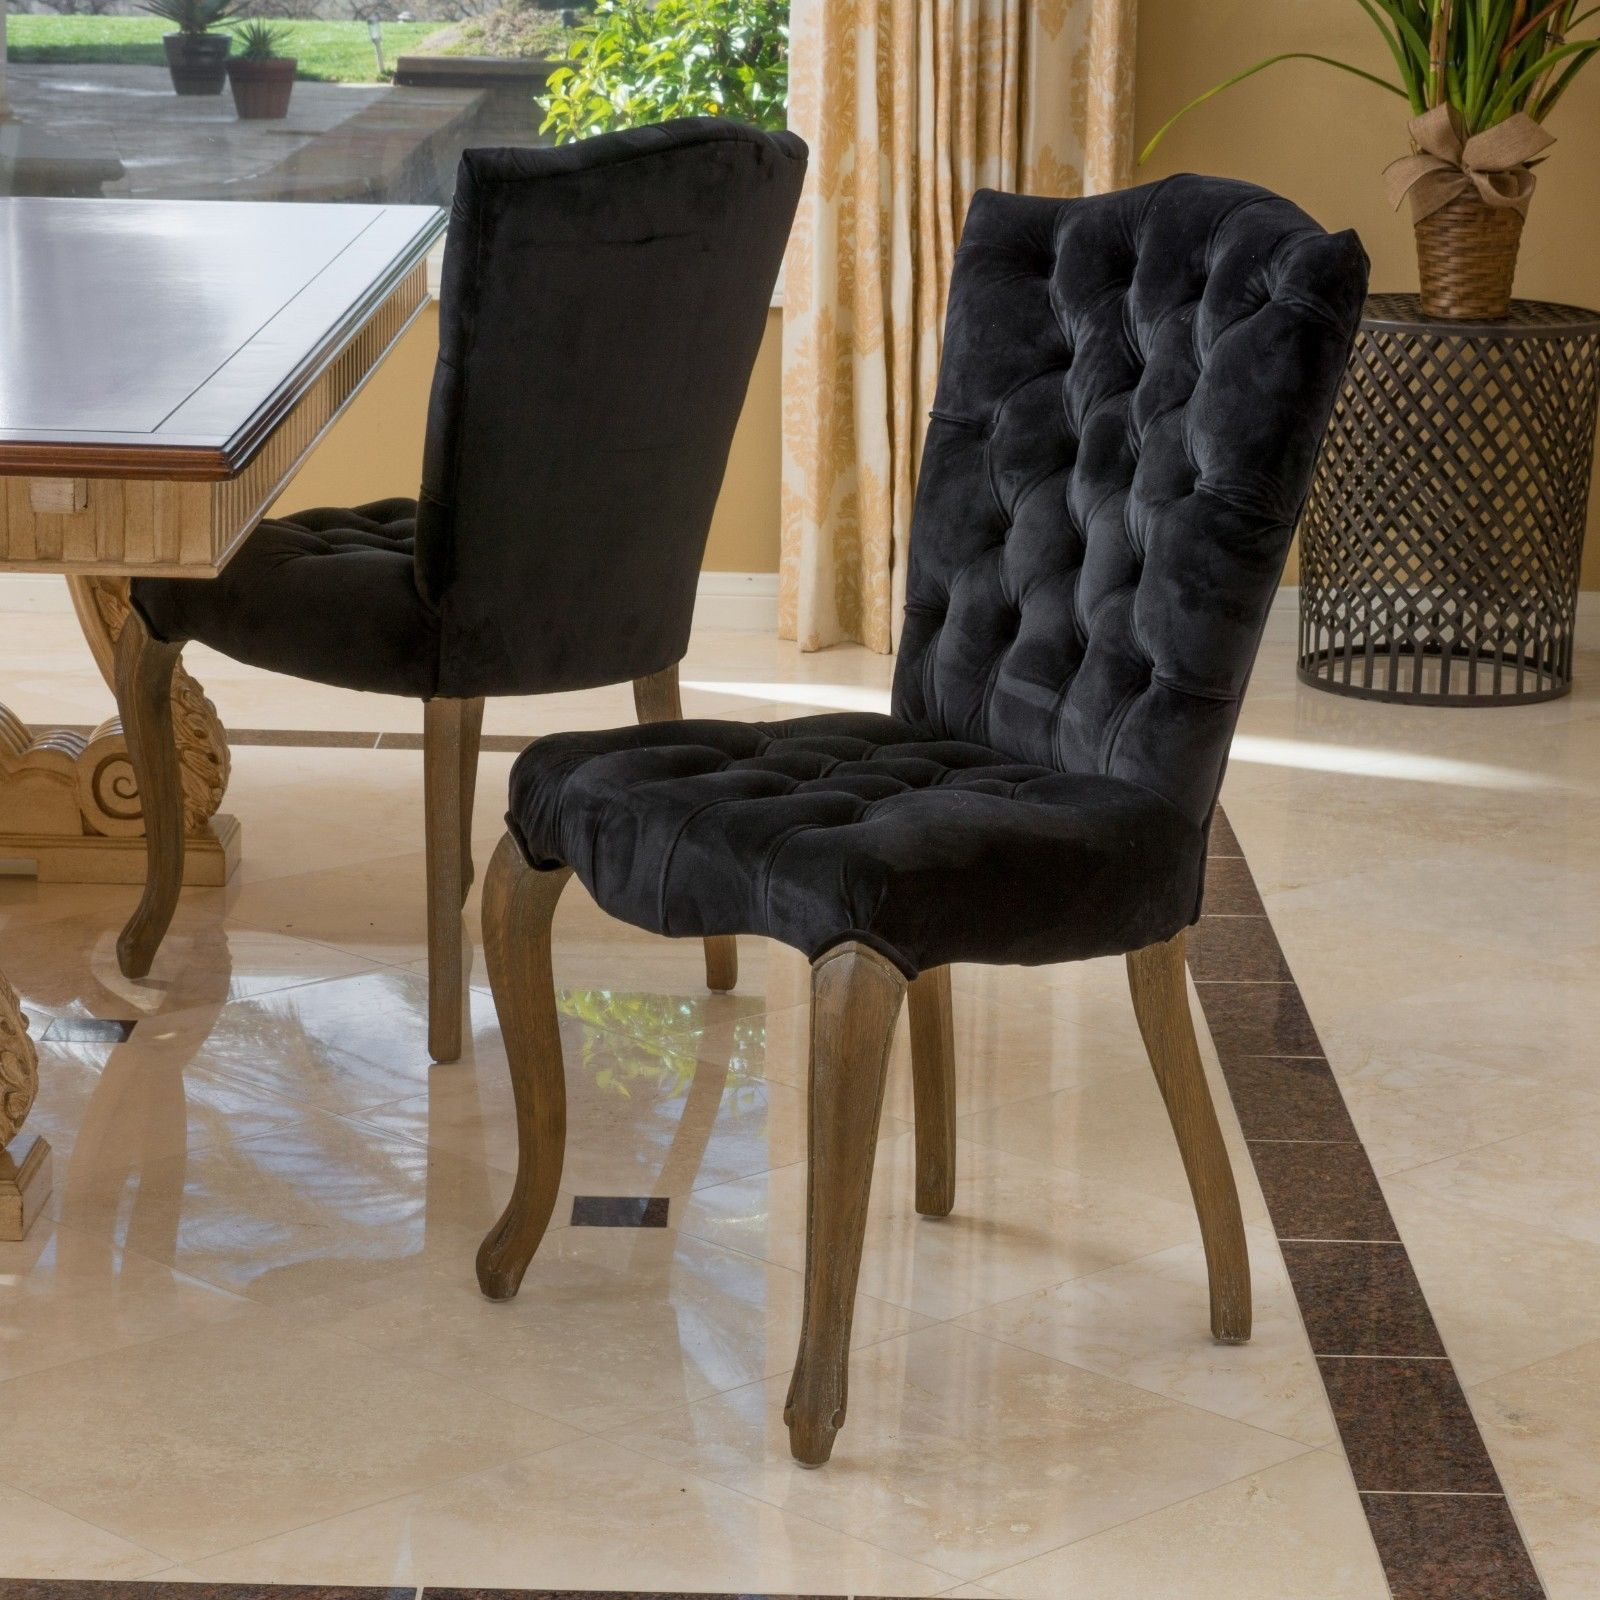 Set of 2 Elegant Black Velvet Tufted Dining Chairs